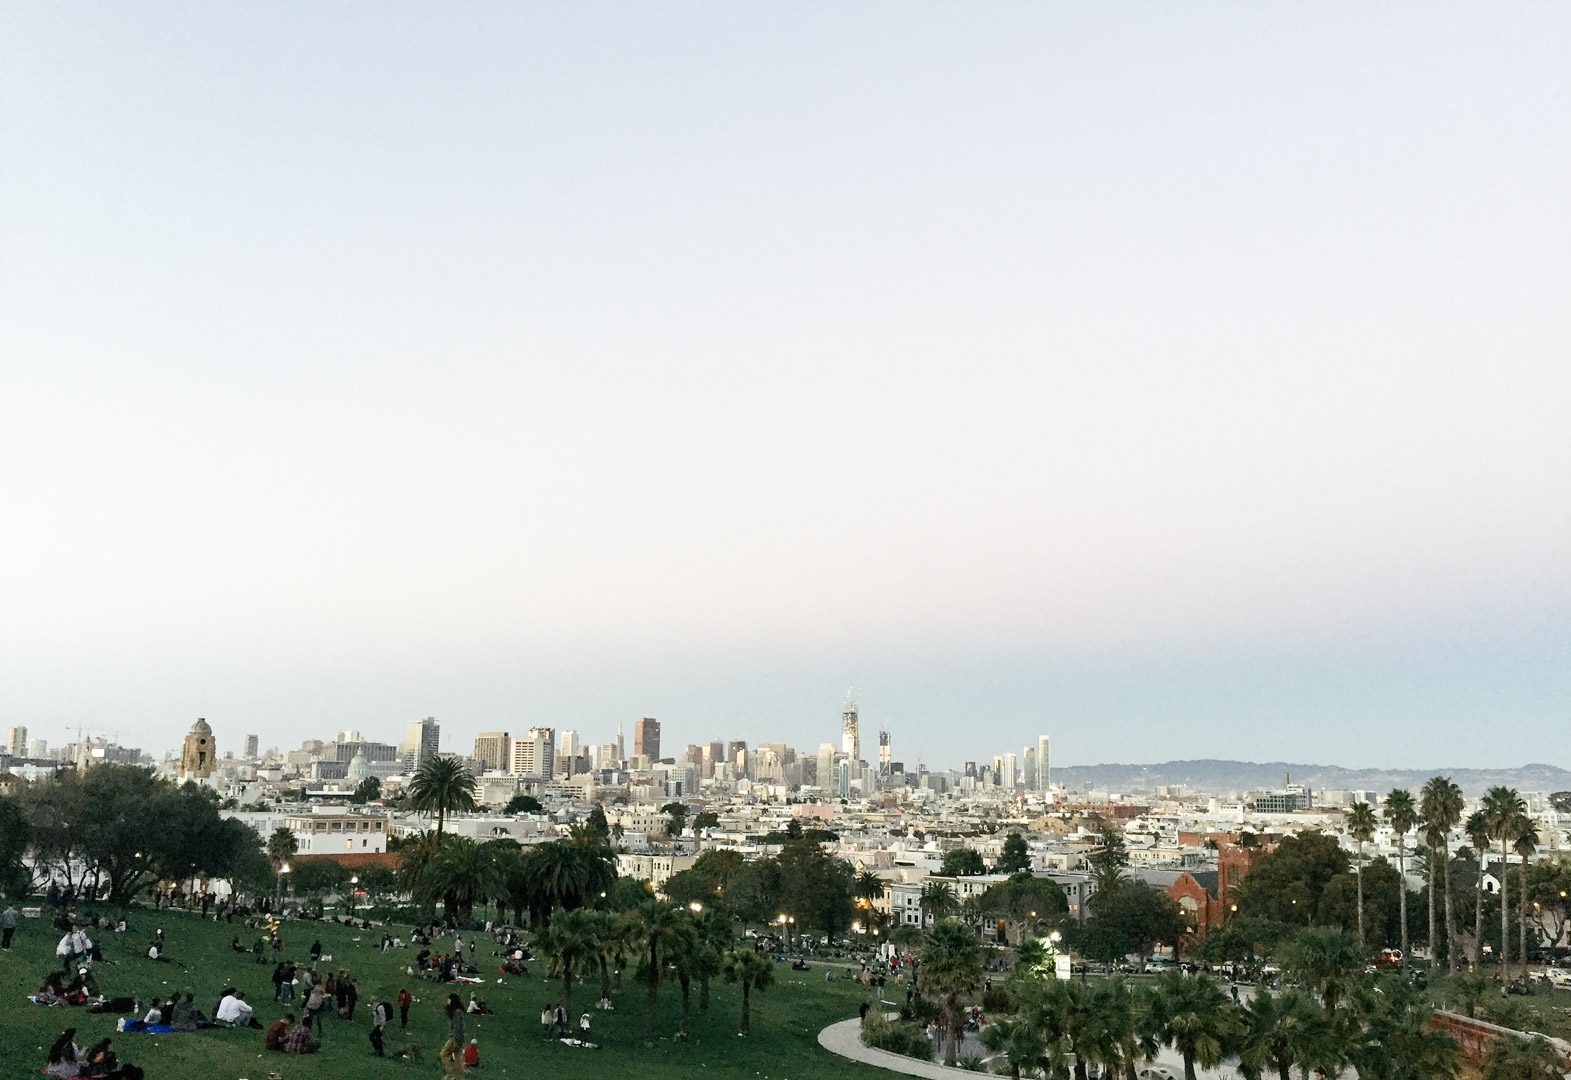 Rosy skyline at Dolores Park